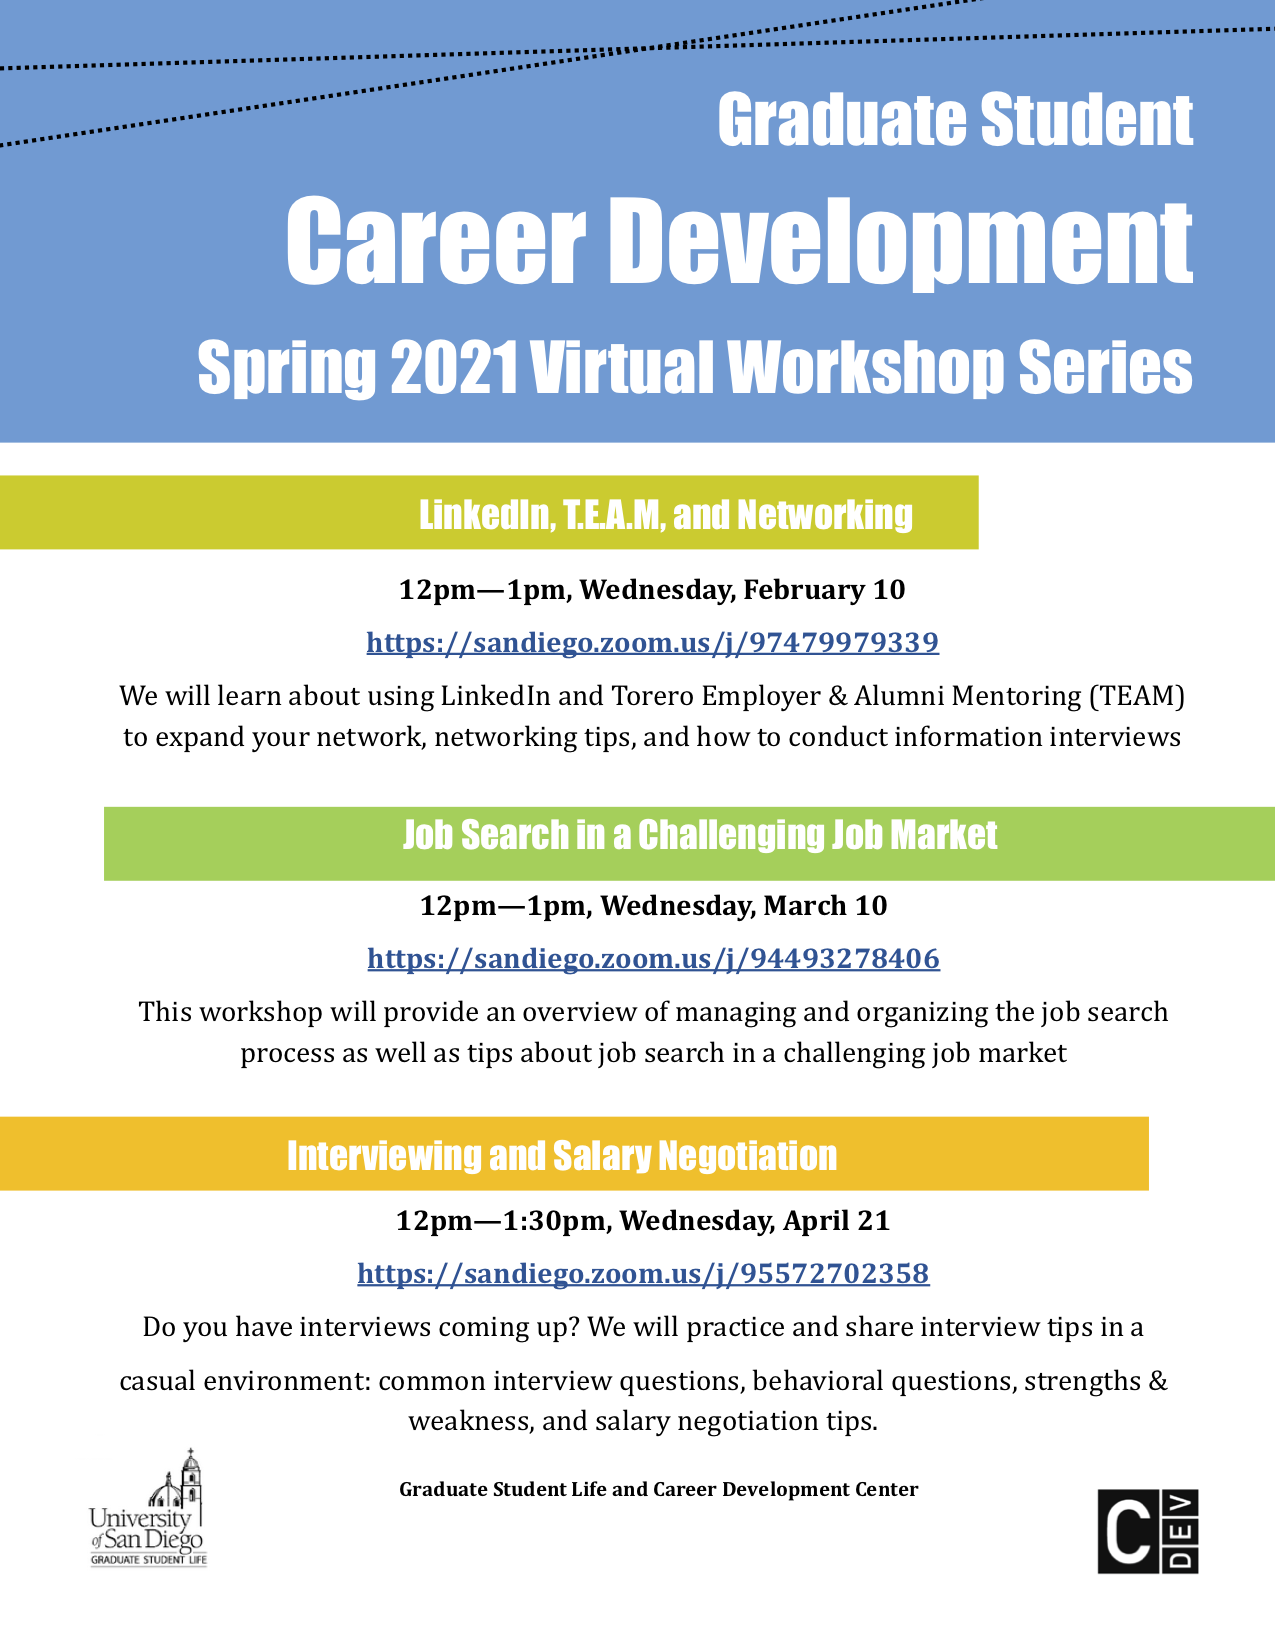 Graduate Student Career Workshop Flyer